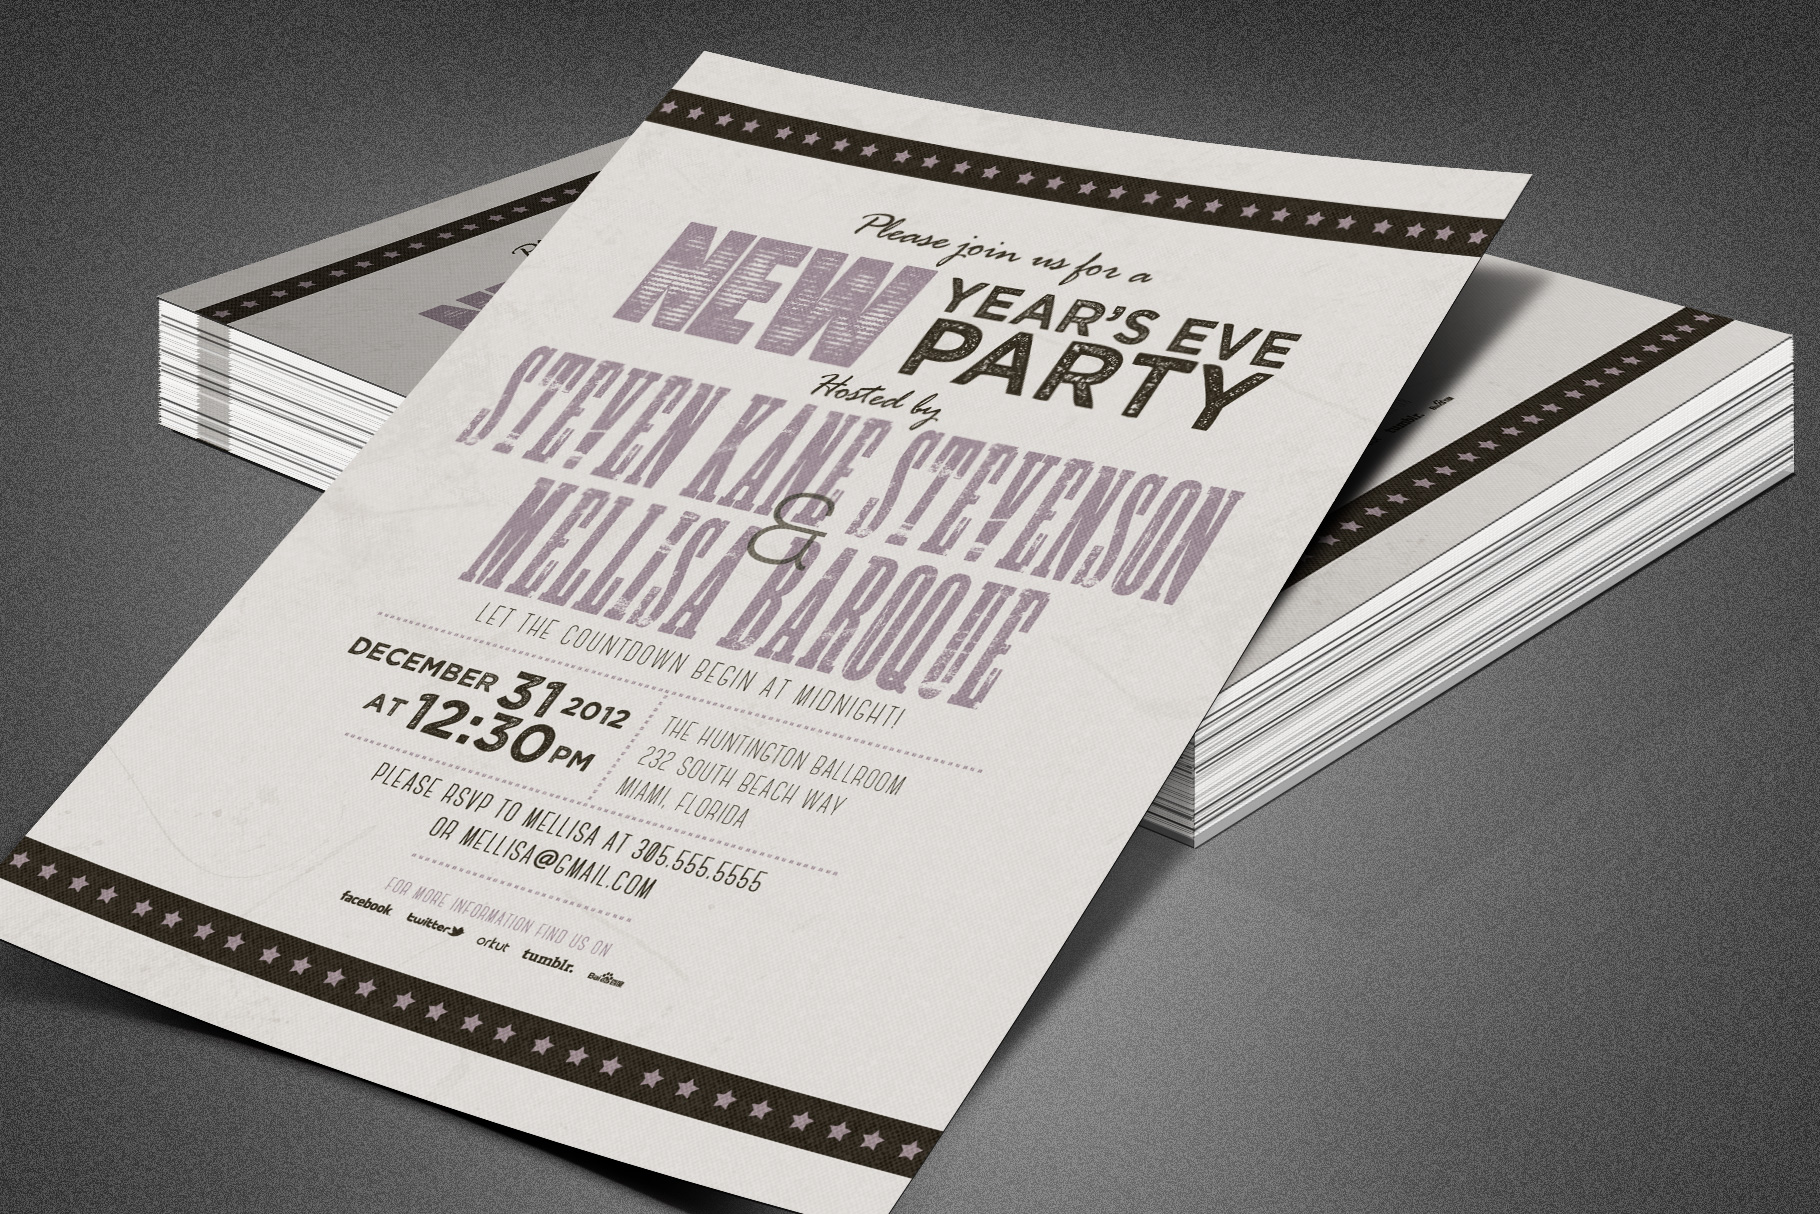 Retro New Year Party Invite Card Template example image 3